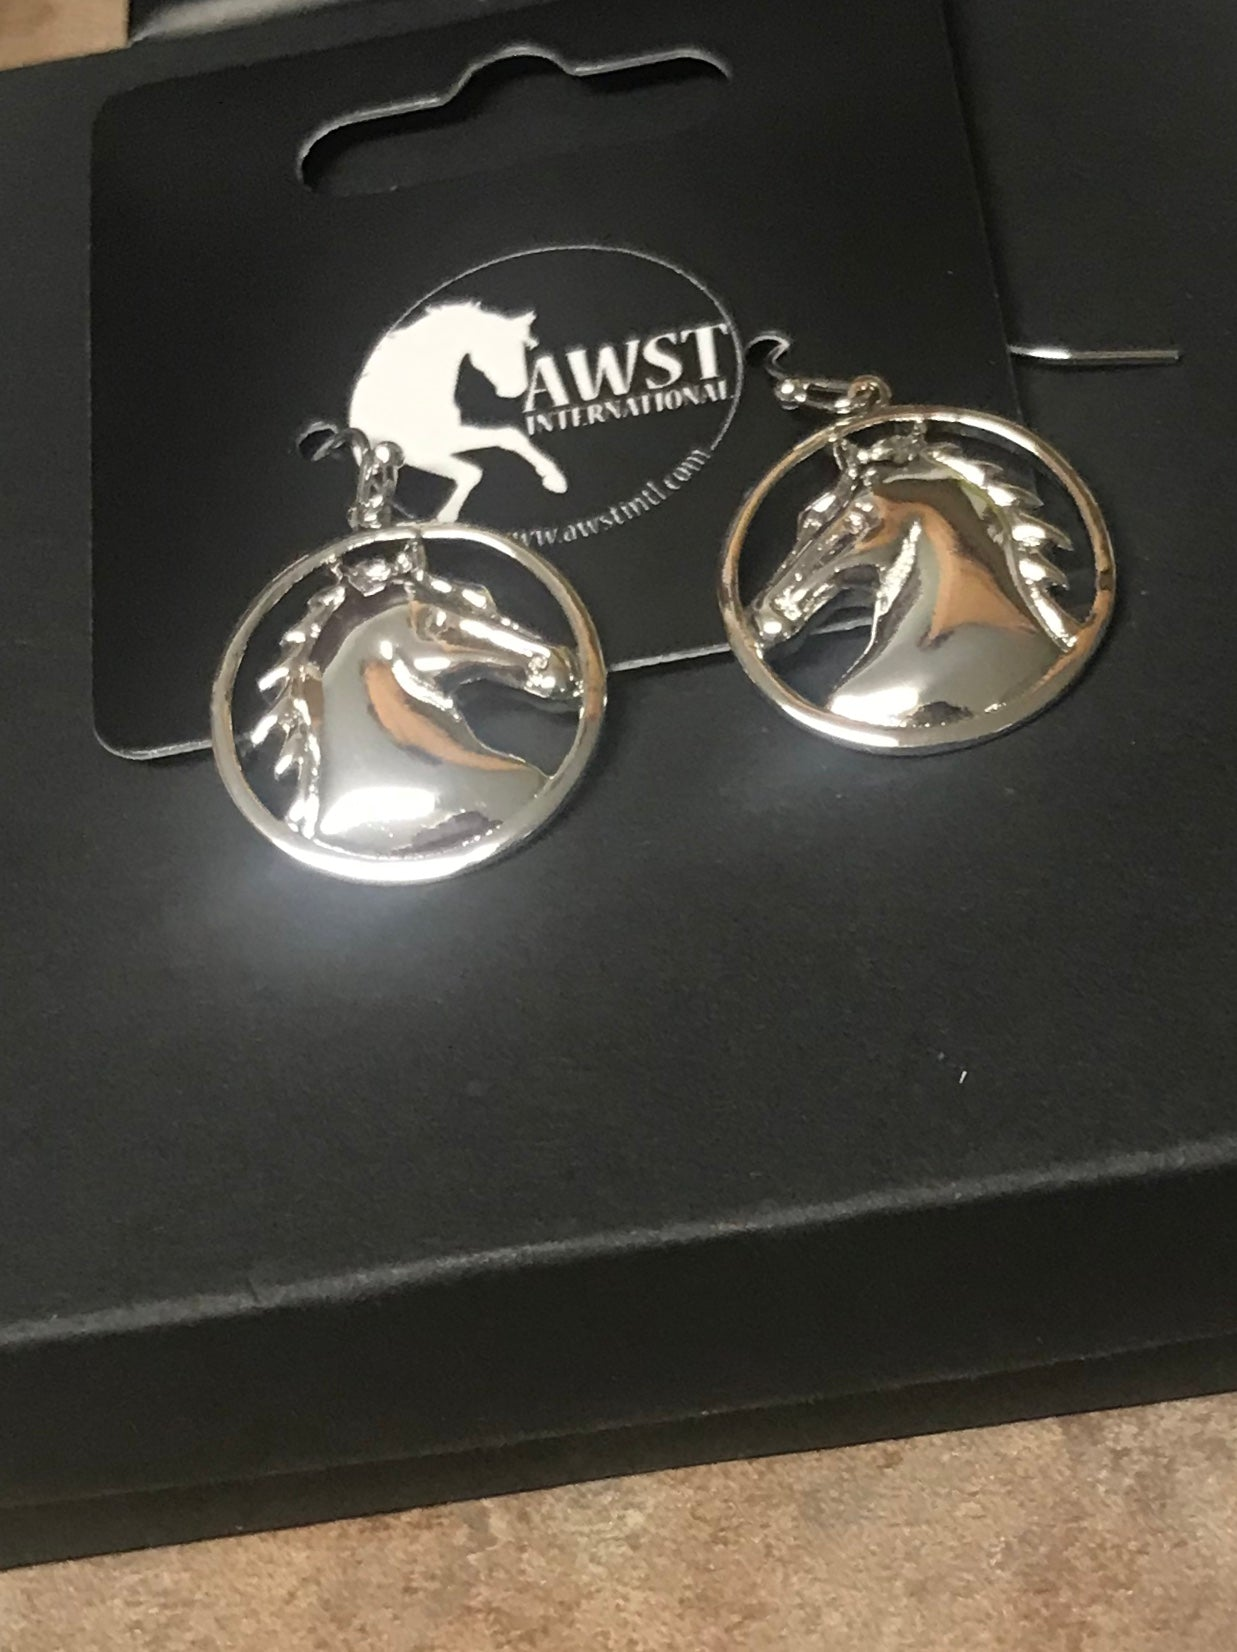 AWST Equi-ternatives Earrings, Round Horse Head Rhodium